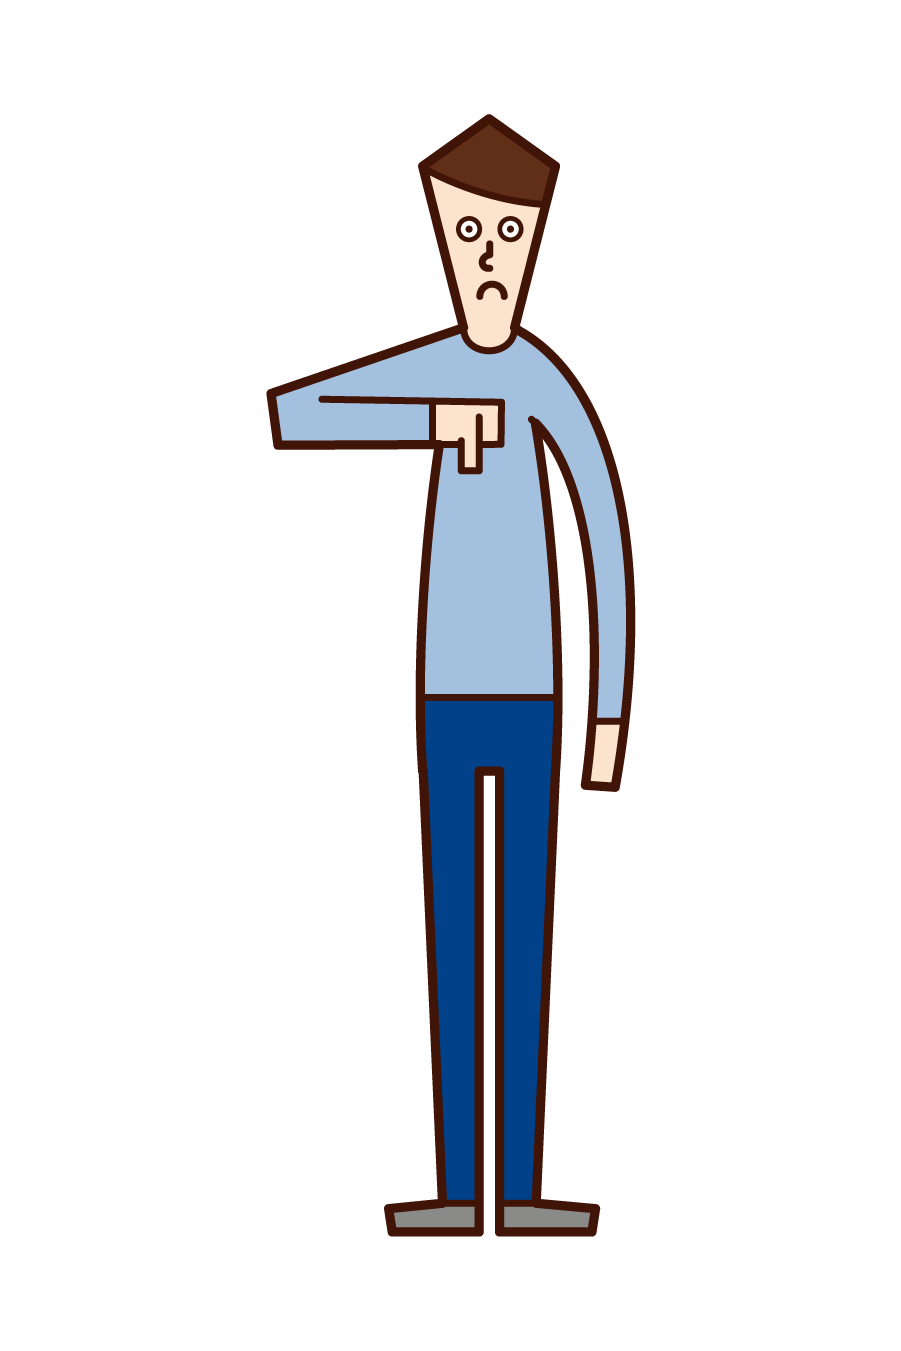 Illustration of a man with his thumb facing down